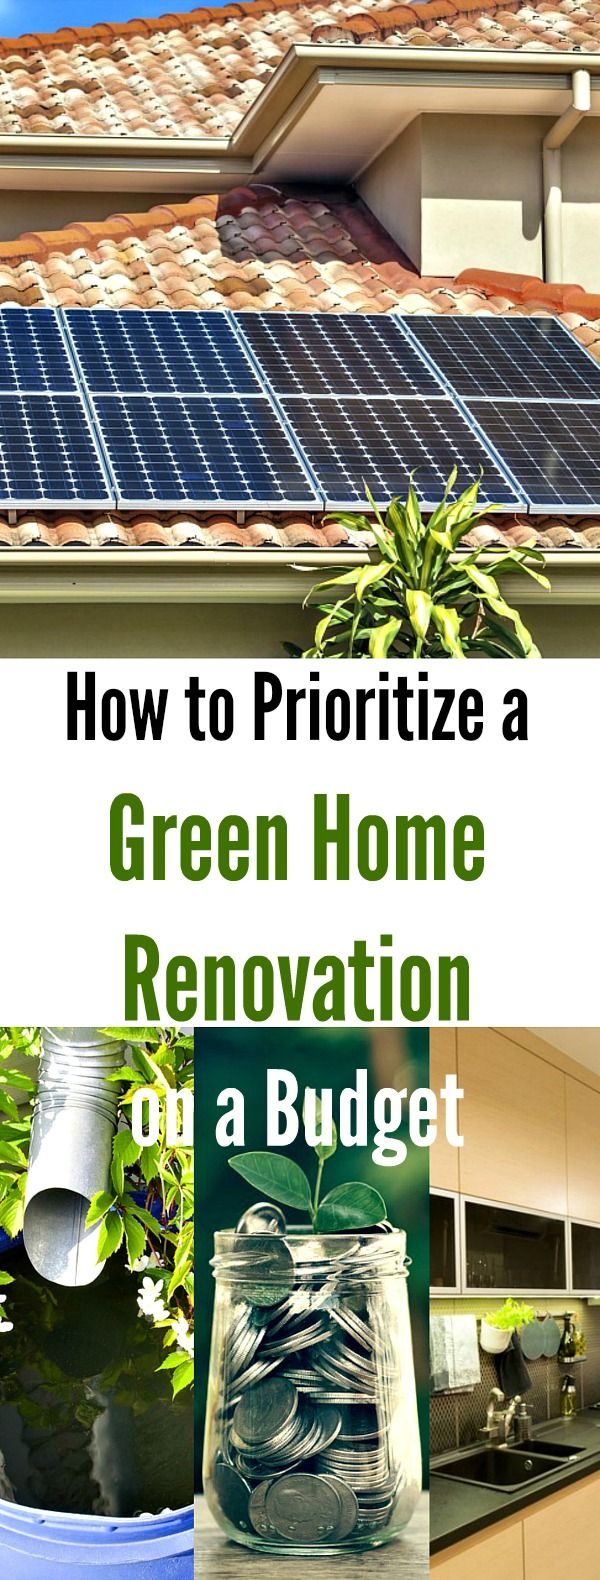 342 best green b2b images on pinterest agriculture for Green home renovations